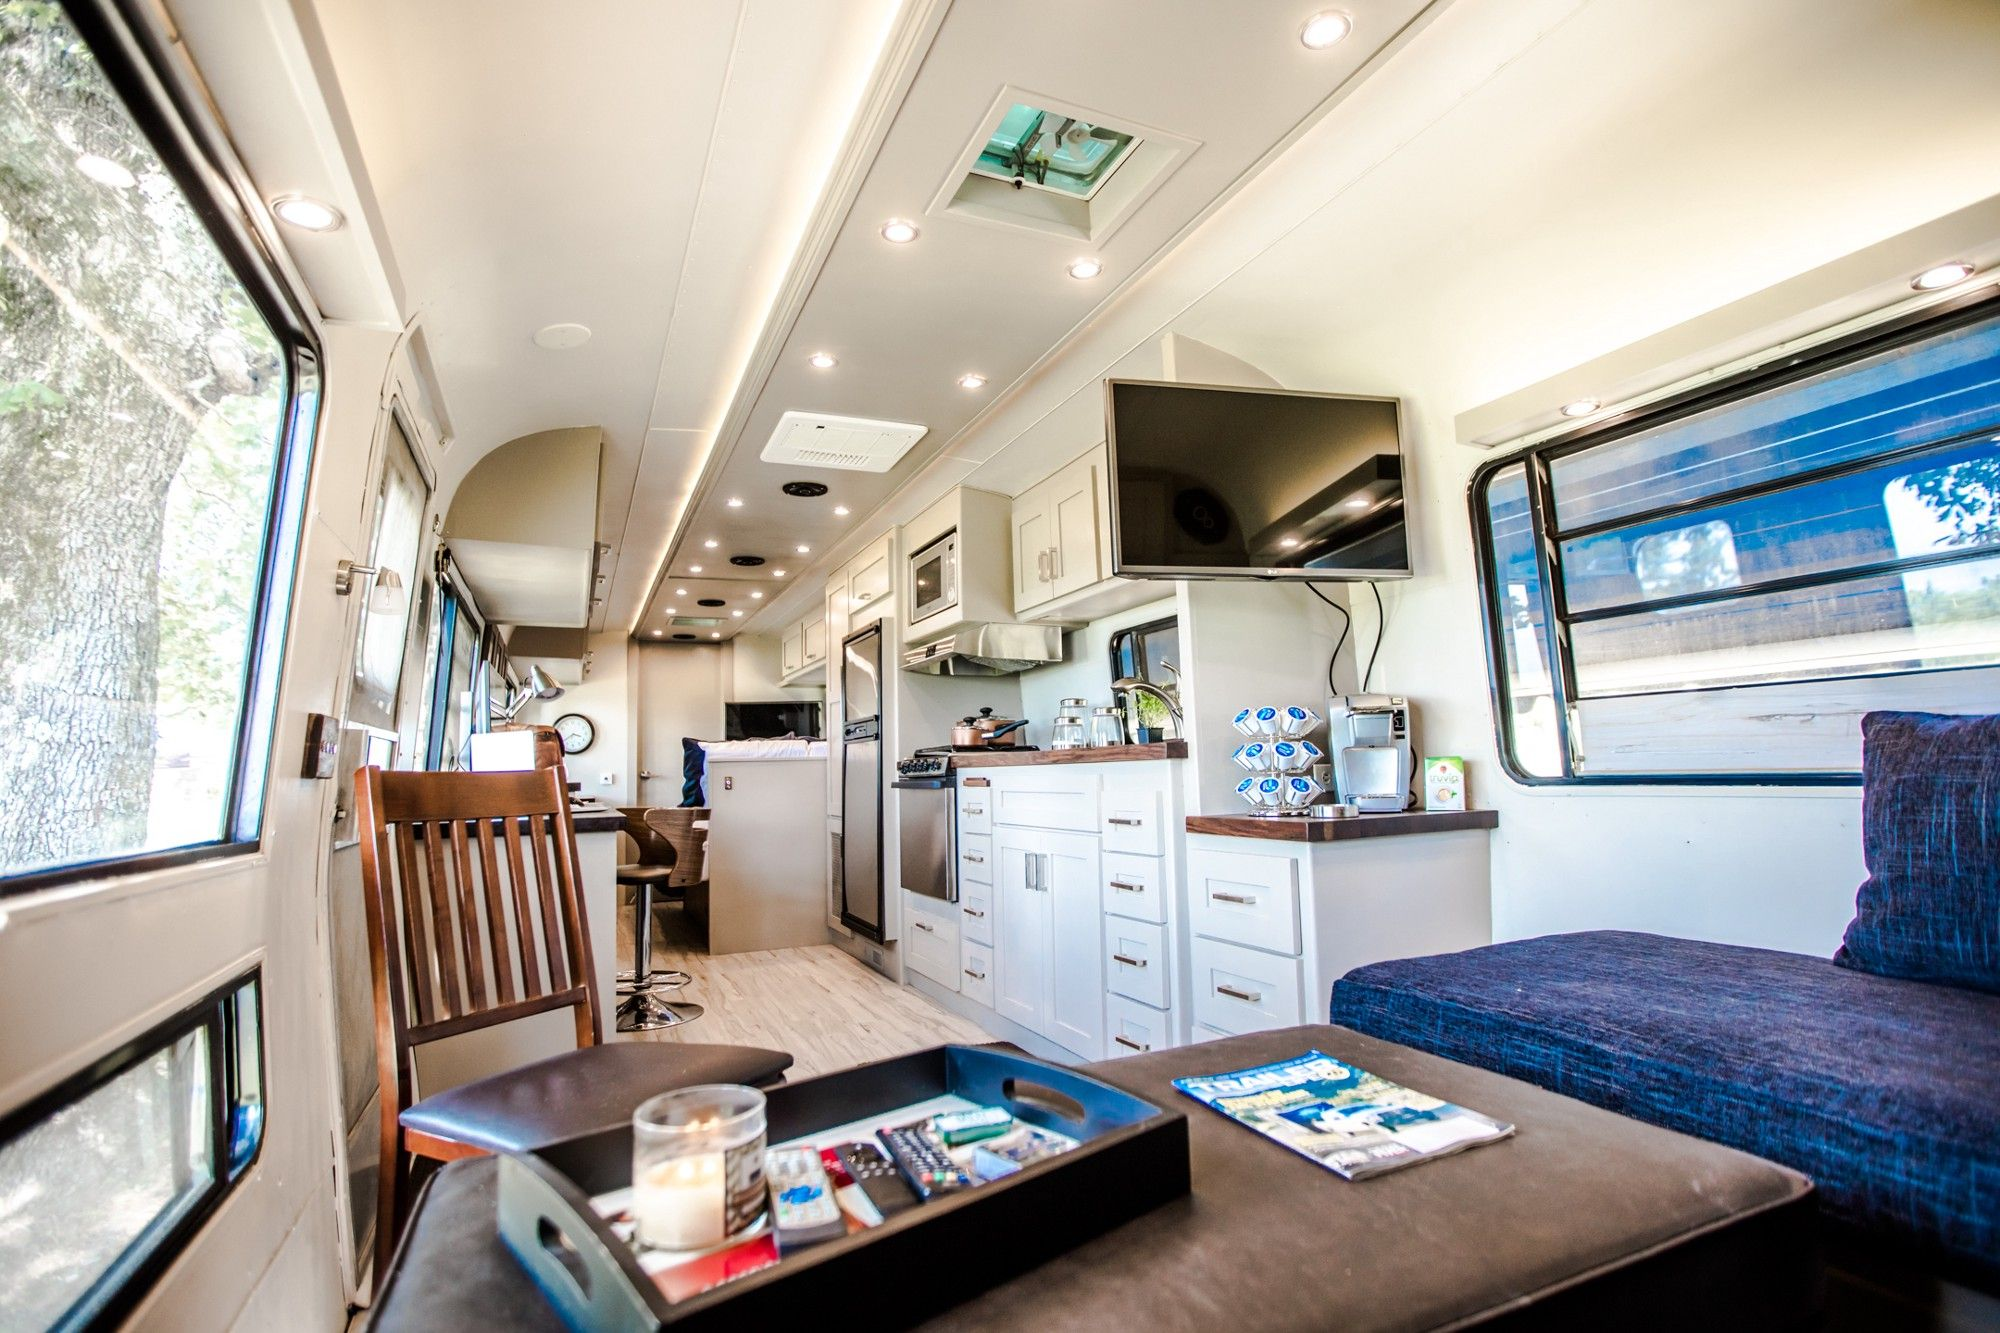 Modern RV Renovations On A Budget